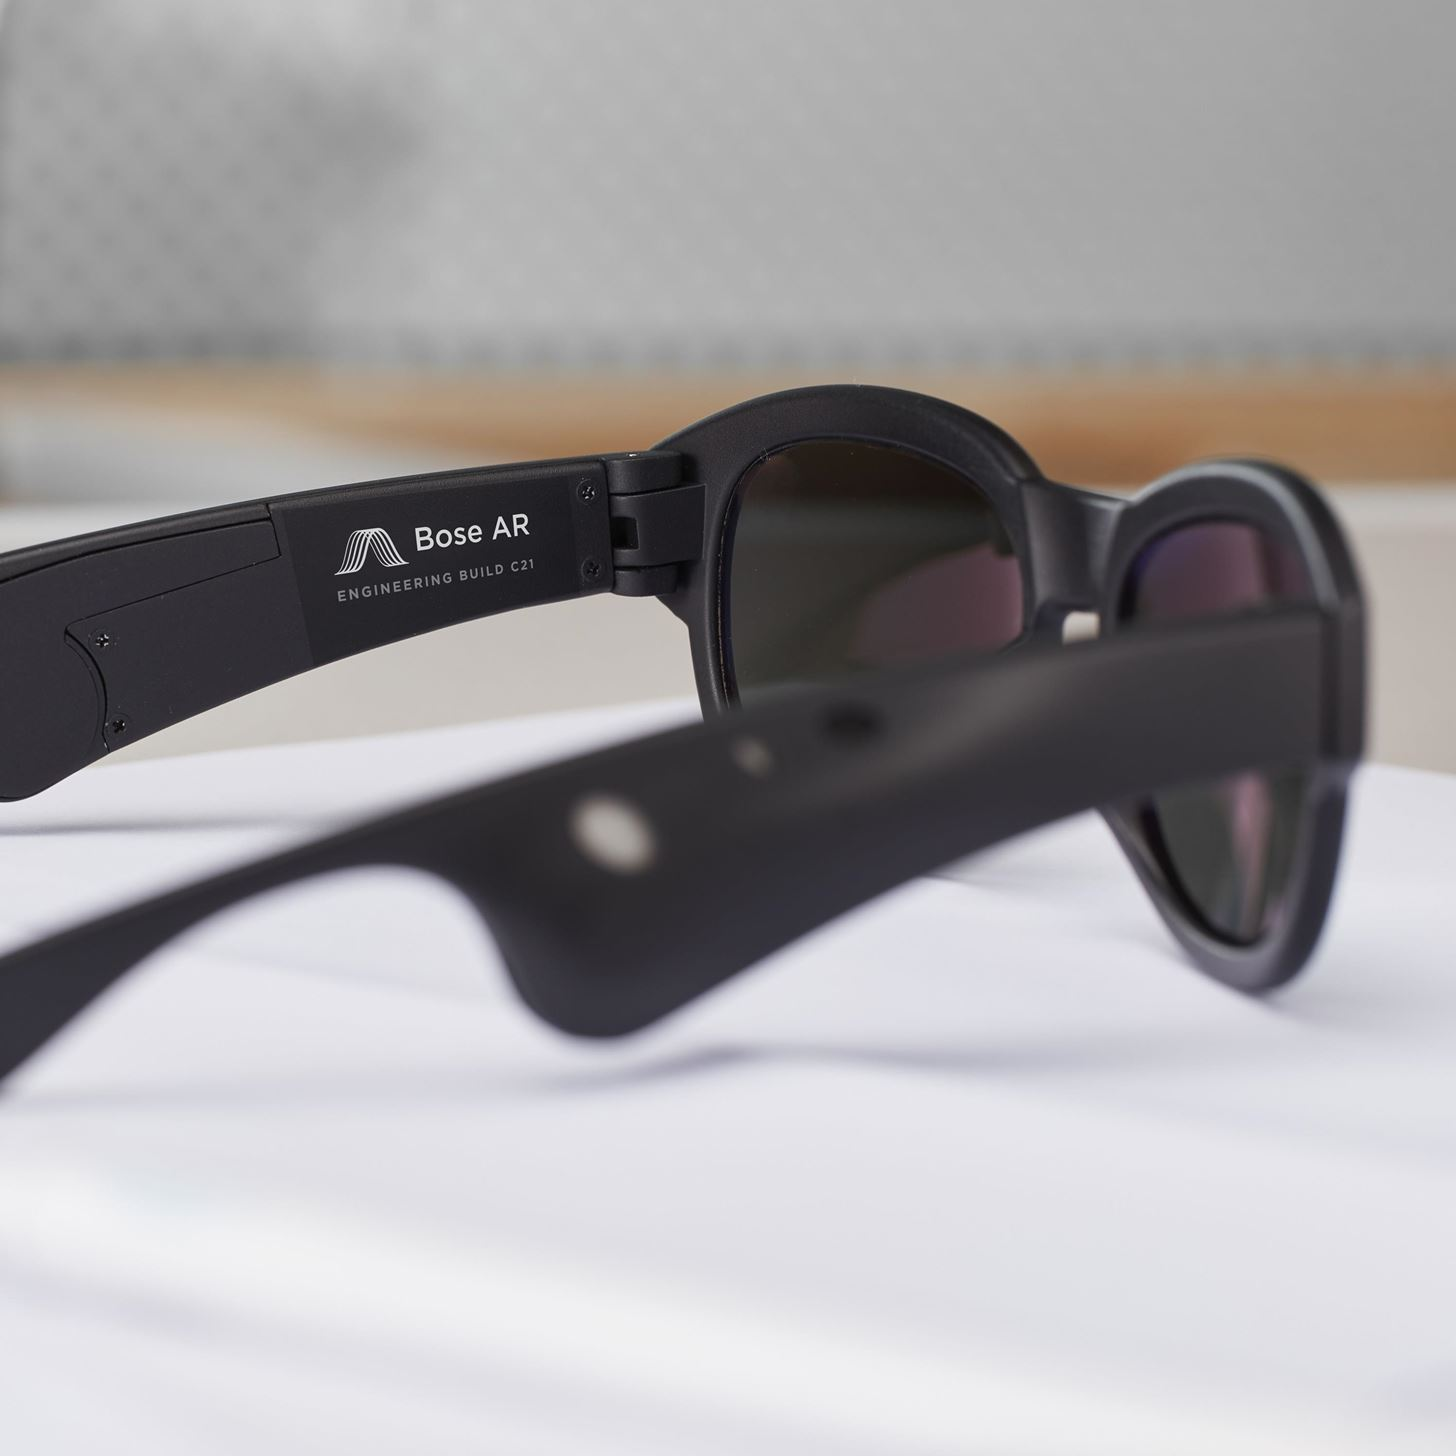 No, Bose, Those Aren't AR Glasses You're Hyping, but Nice Try